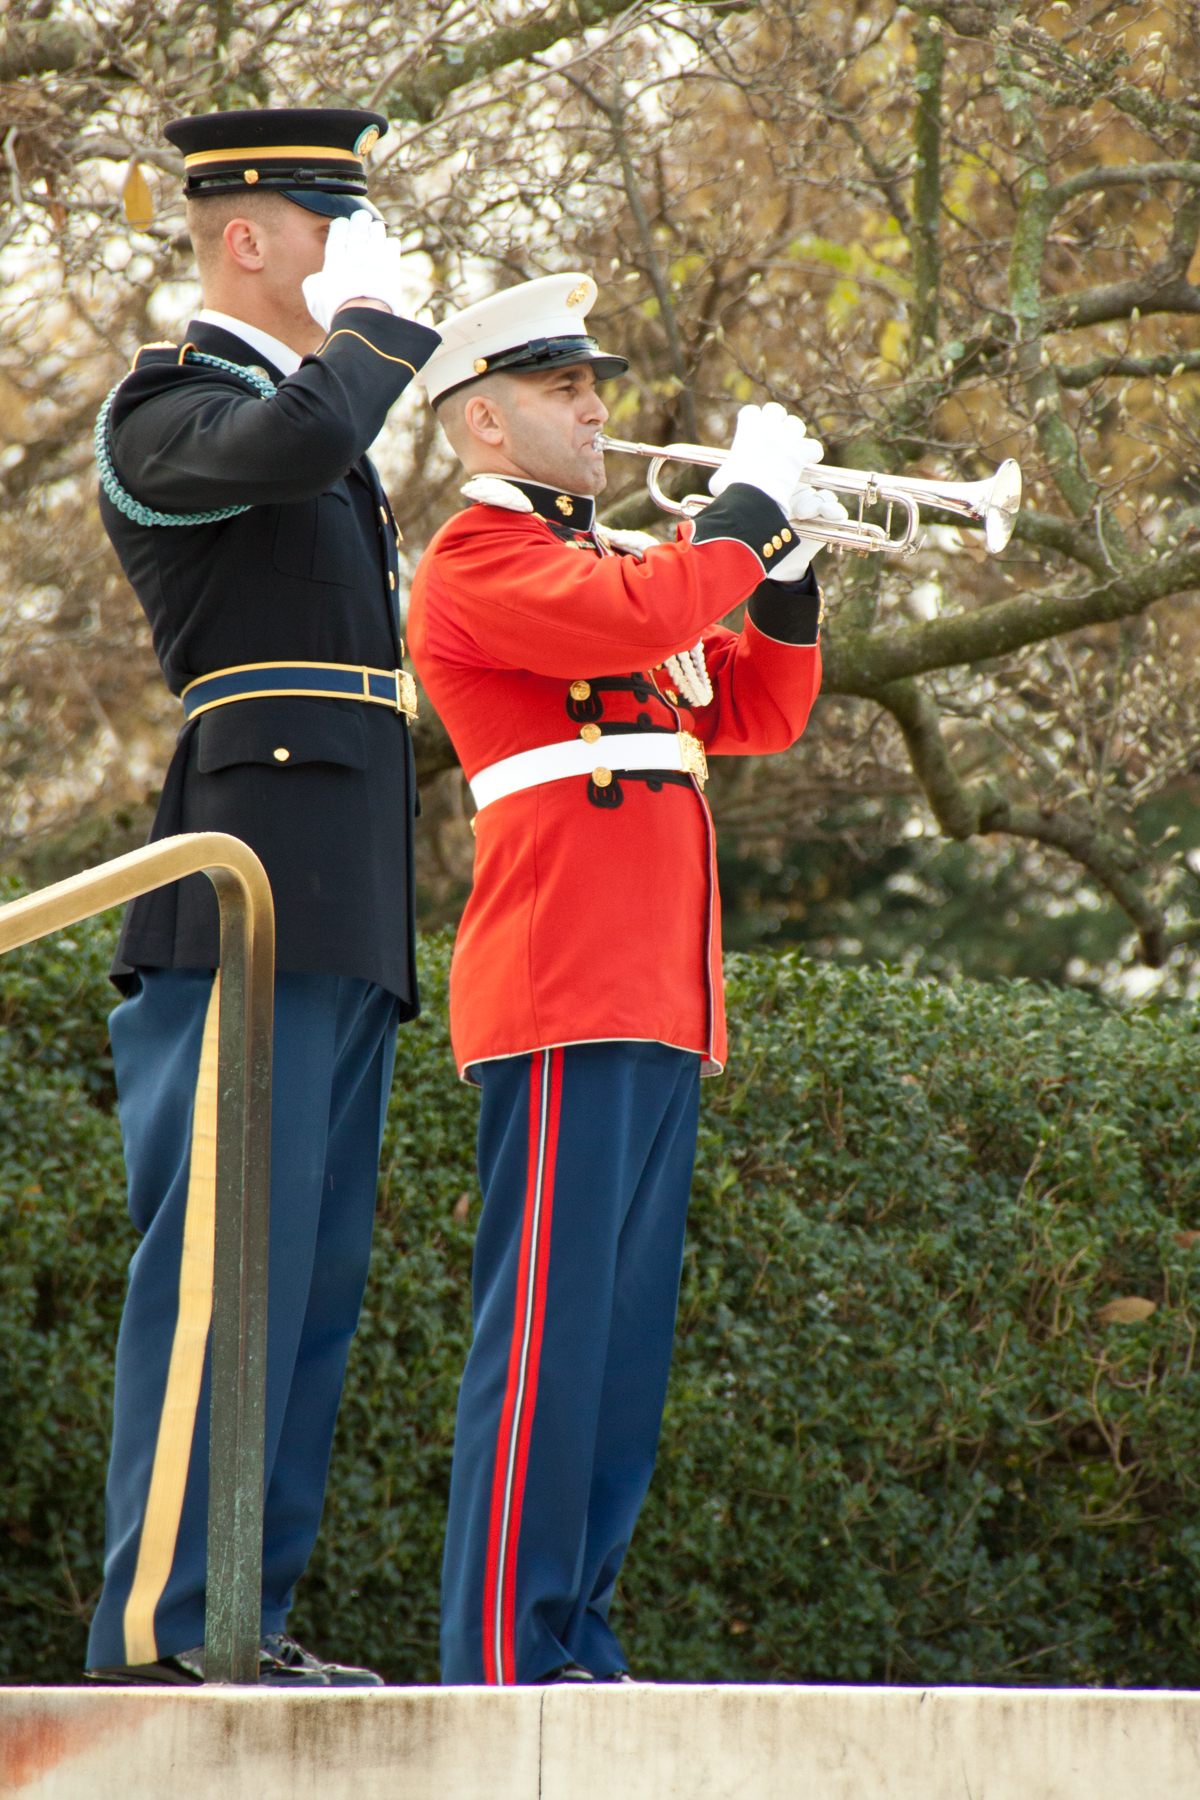 """Master Gunnery Sgt. John Abbracciamento, trumpeter and cornetist of """"The President's Own"""" U.S. Marine Band, said he's' looking forward to next month's performance in Dix Hills.   Photo Courtesy of U.S. Marine Band Public Affairs"""